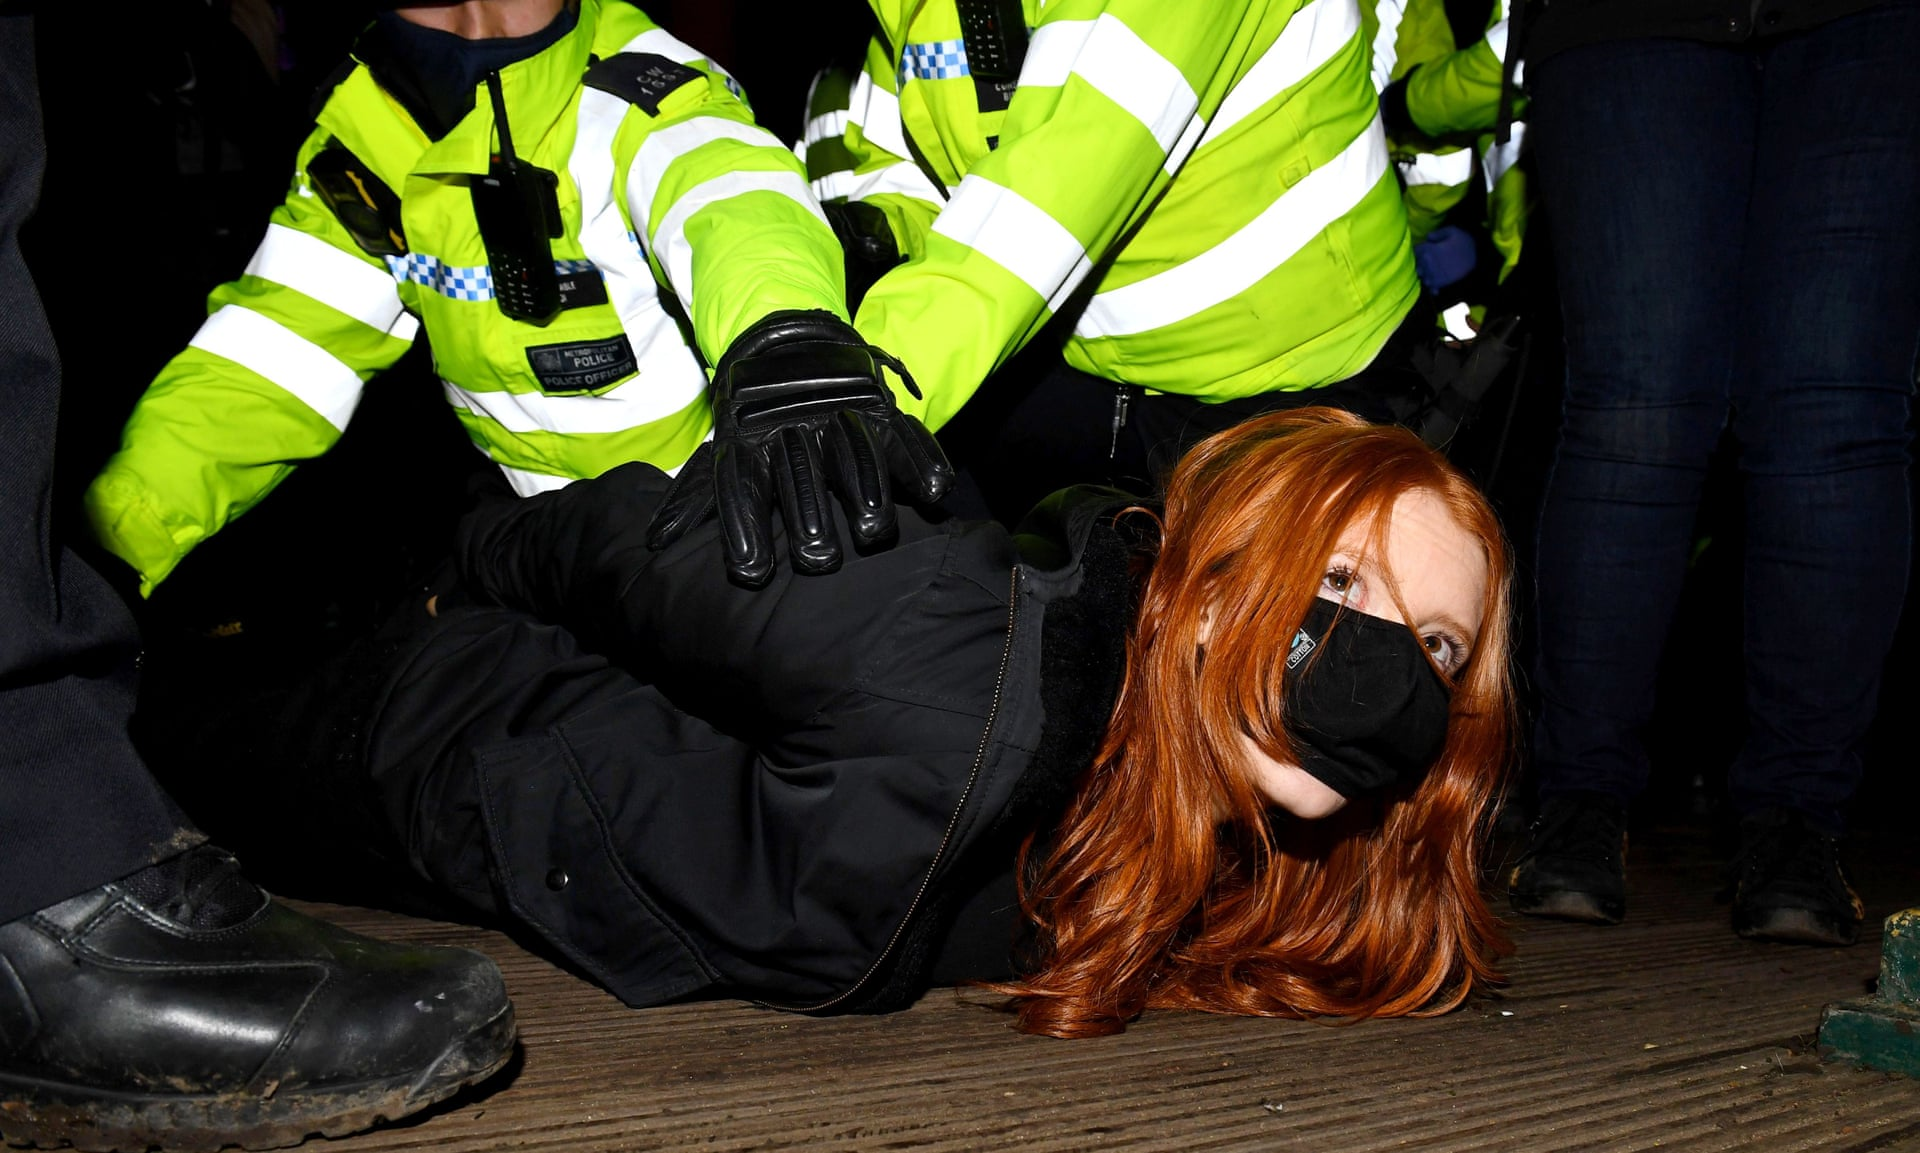 Patsy Stevenson, a young woman, on the ground being arrested by police who have their knees on her